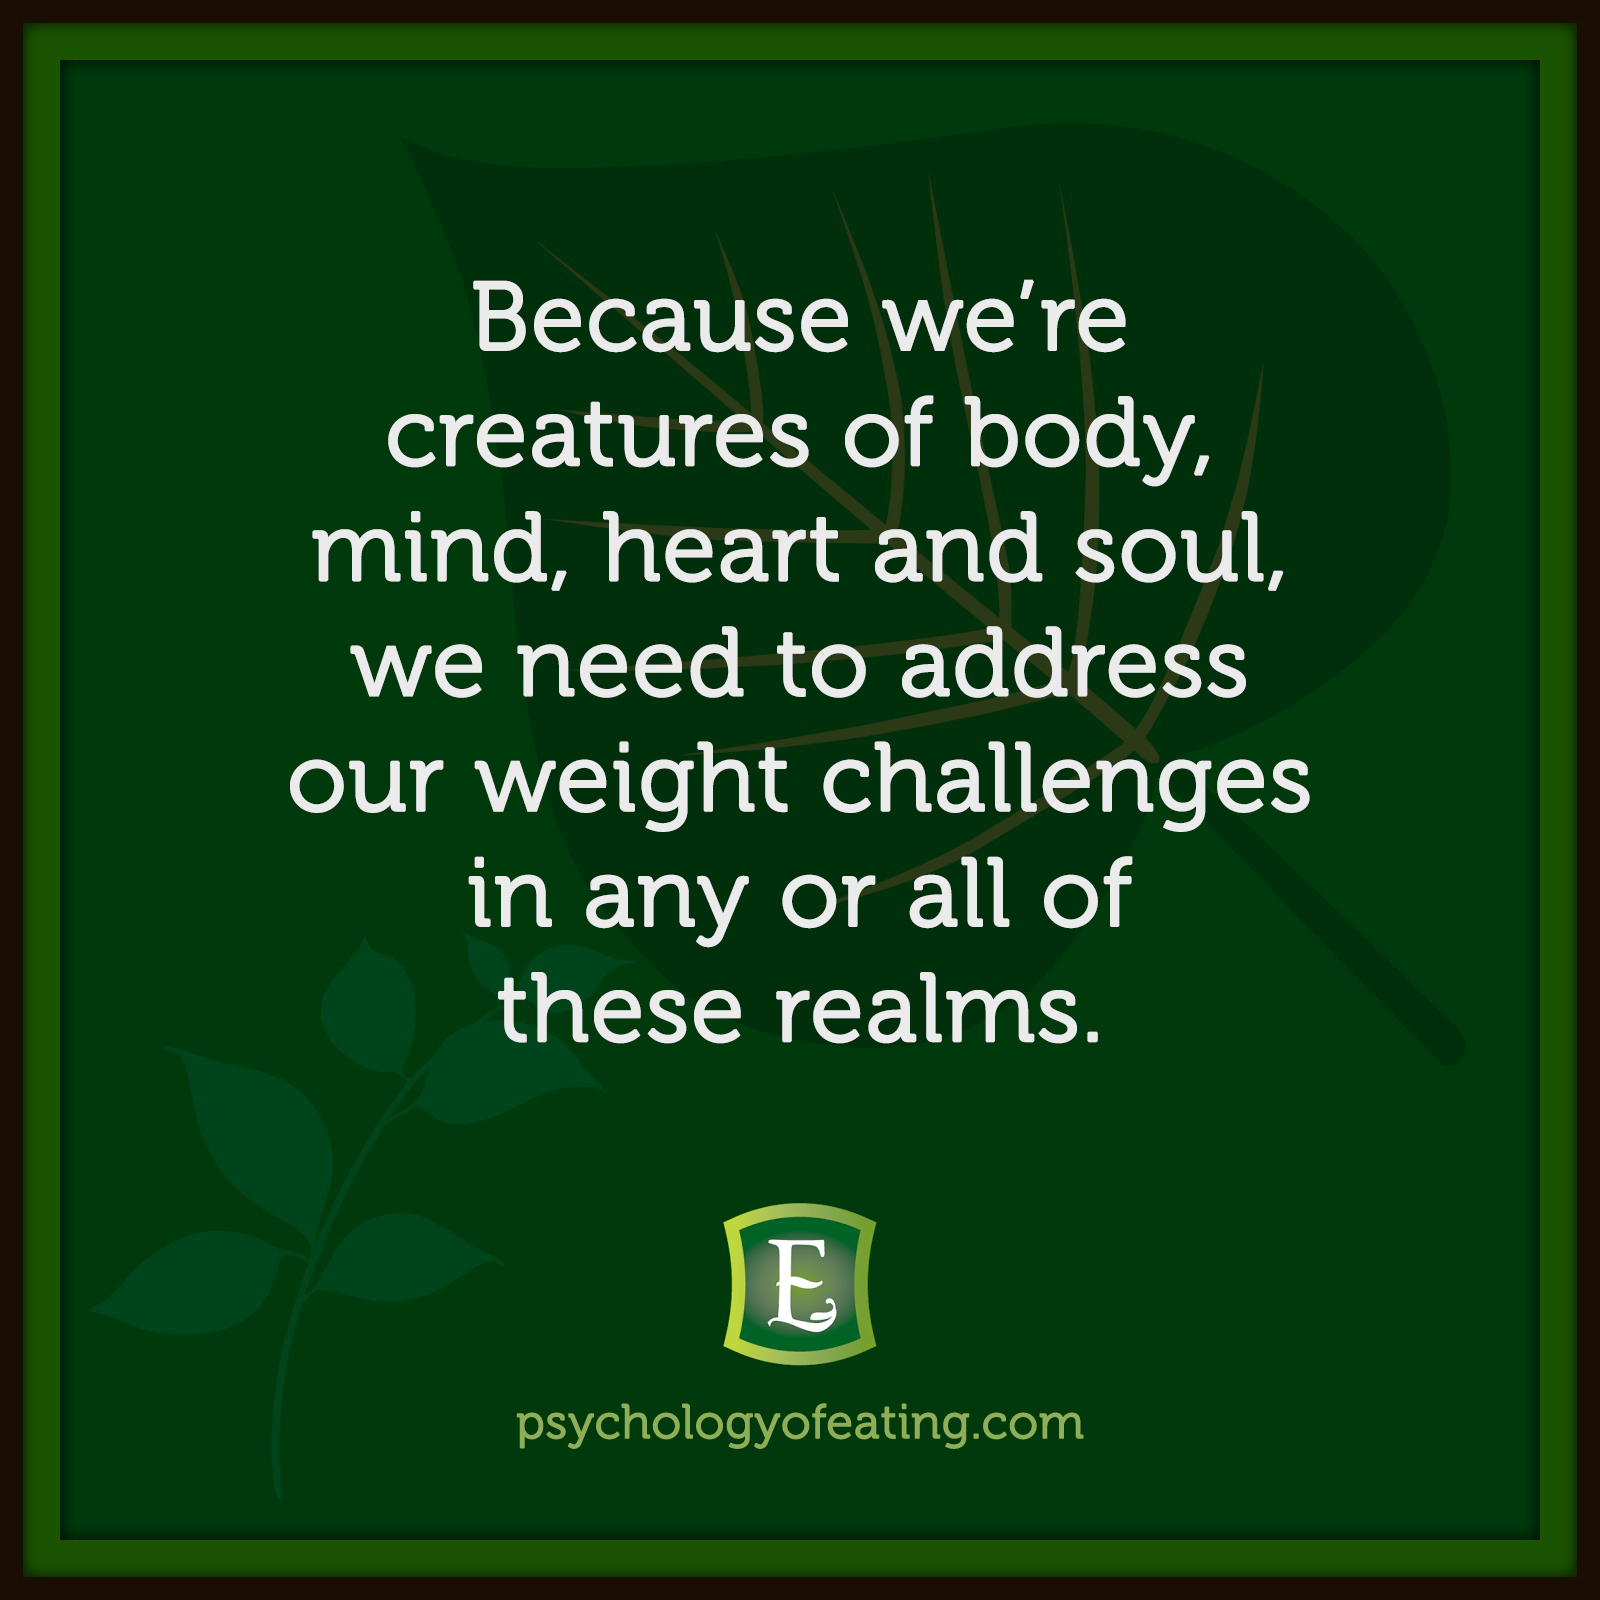 Because we're creatures of body, mind, heart and soul, we need to address our weight challenges in any or all of these realms. #health #nutrition #eatingpsychology #IPE